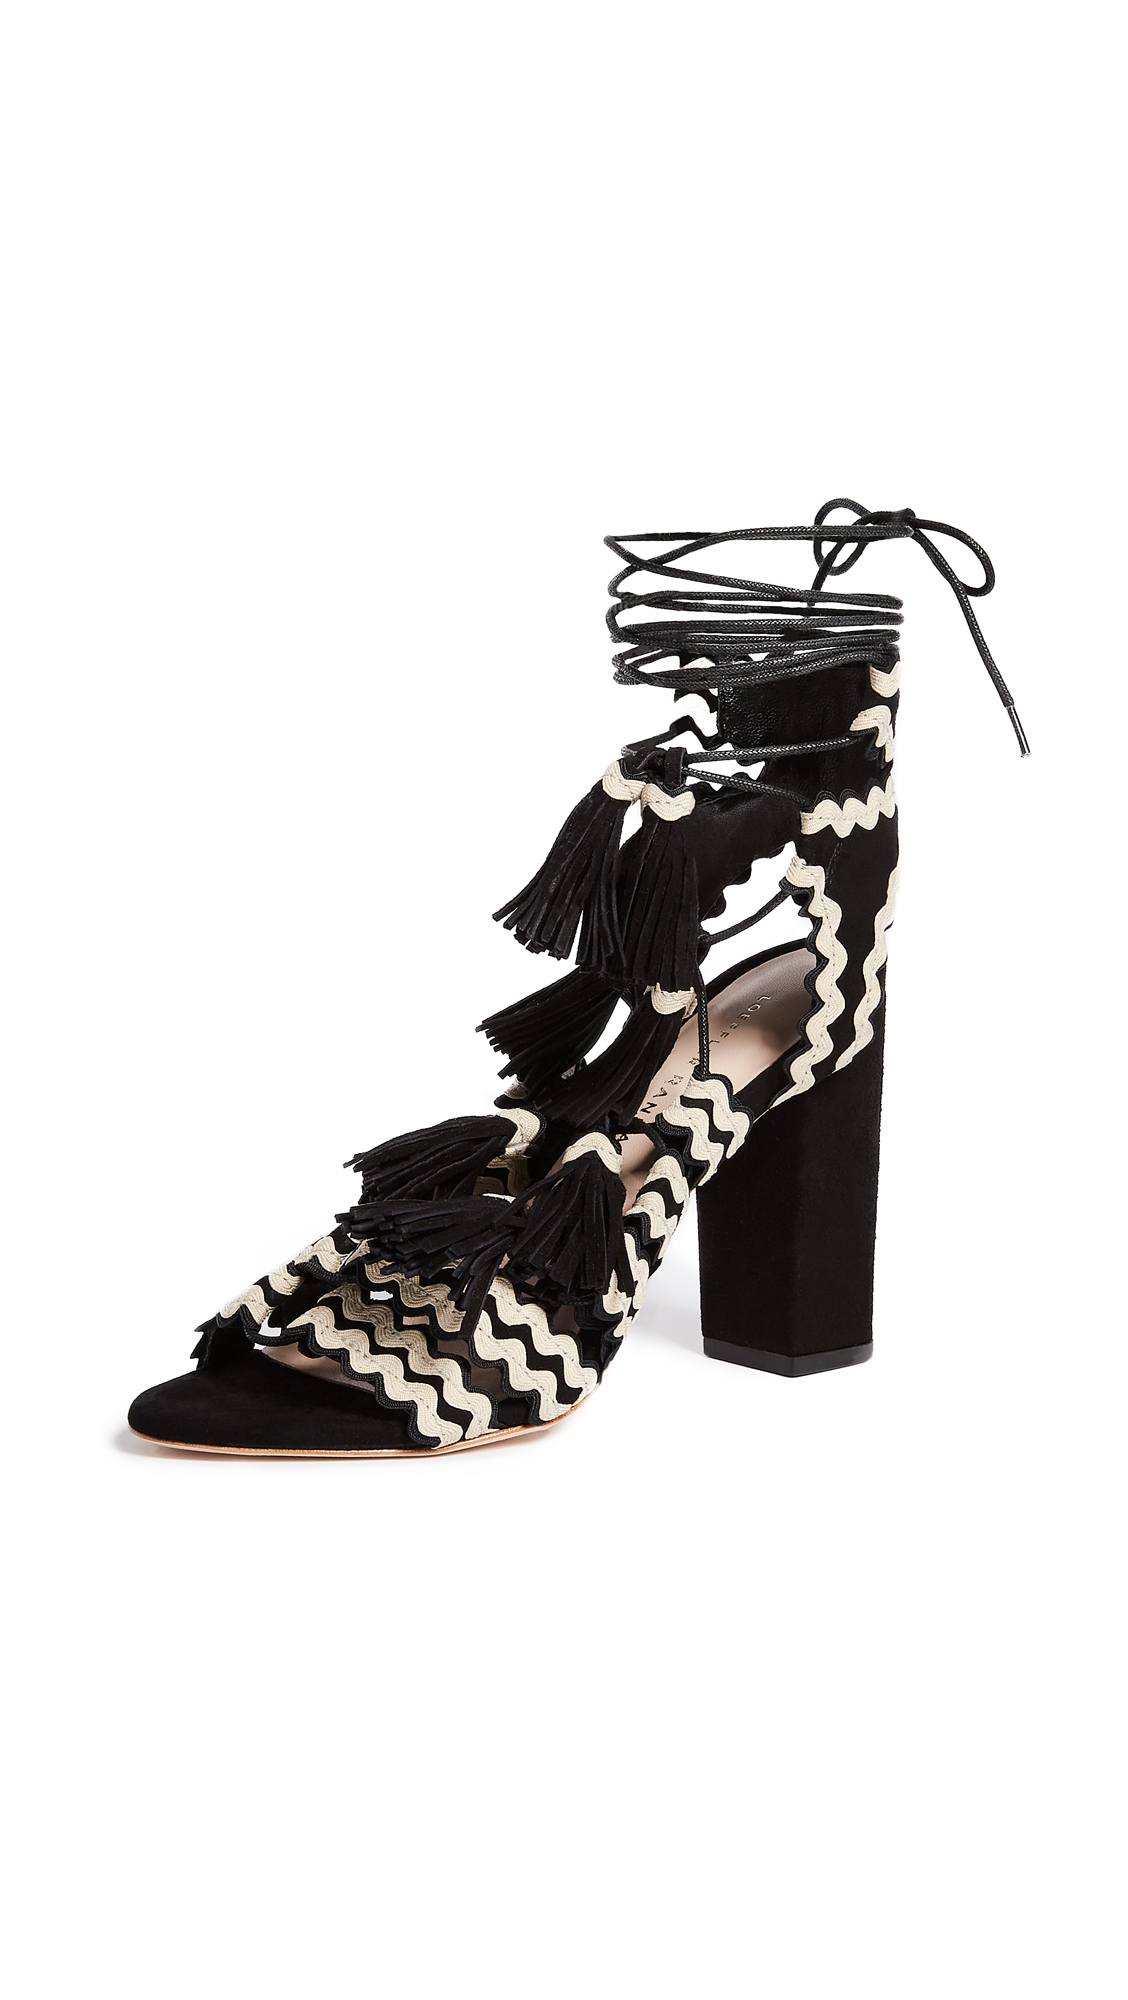 Loeffler Randall Luz Tassel Sandals - Black/Natural